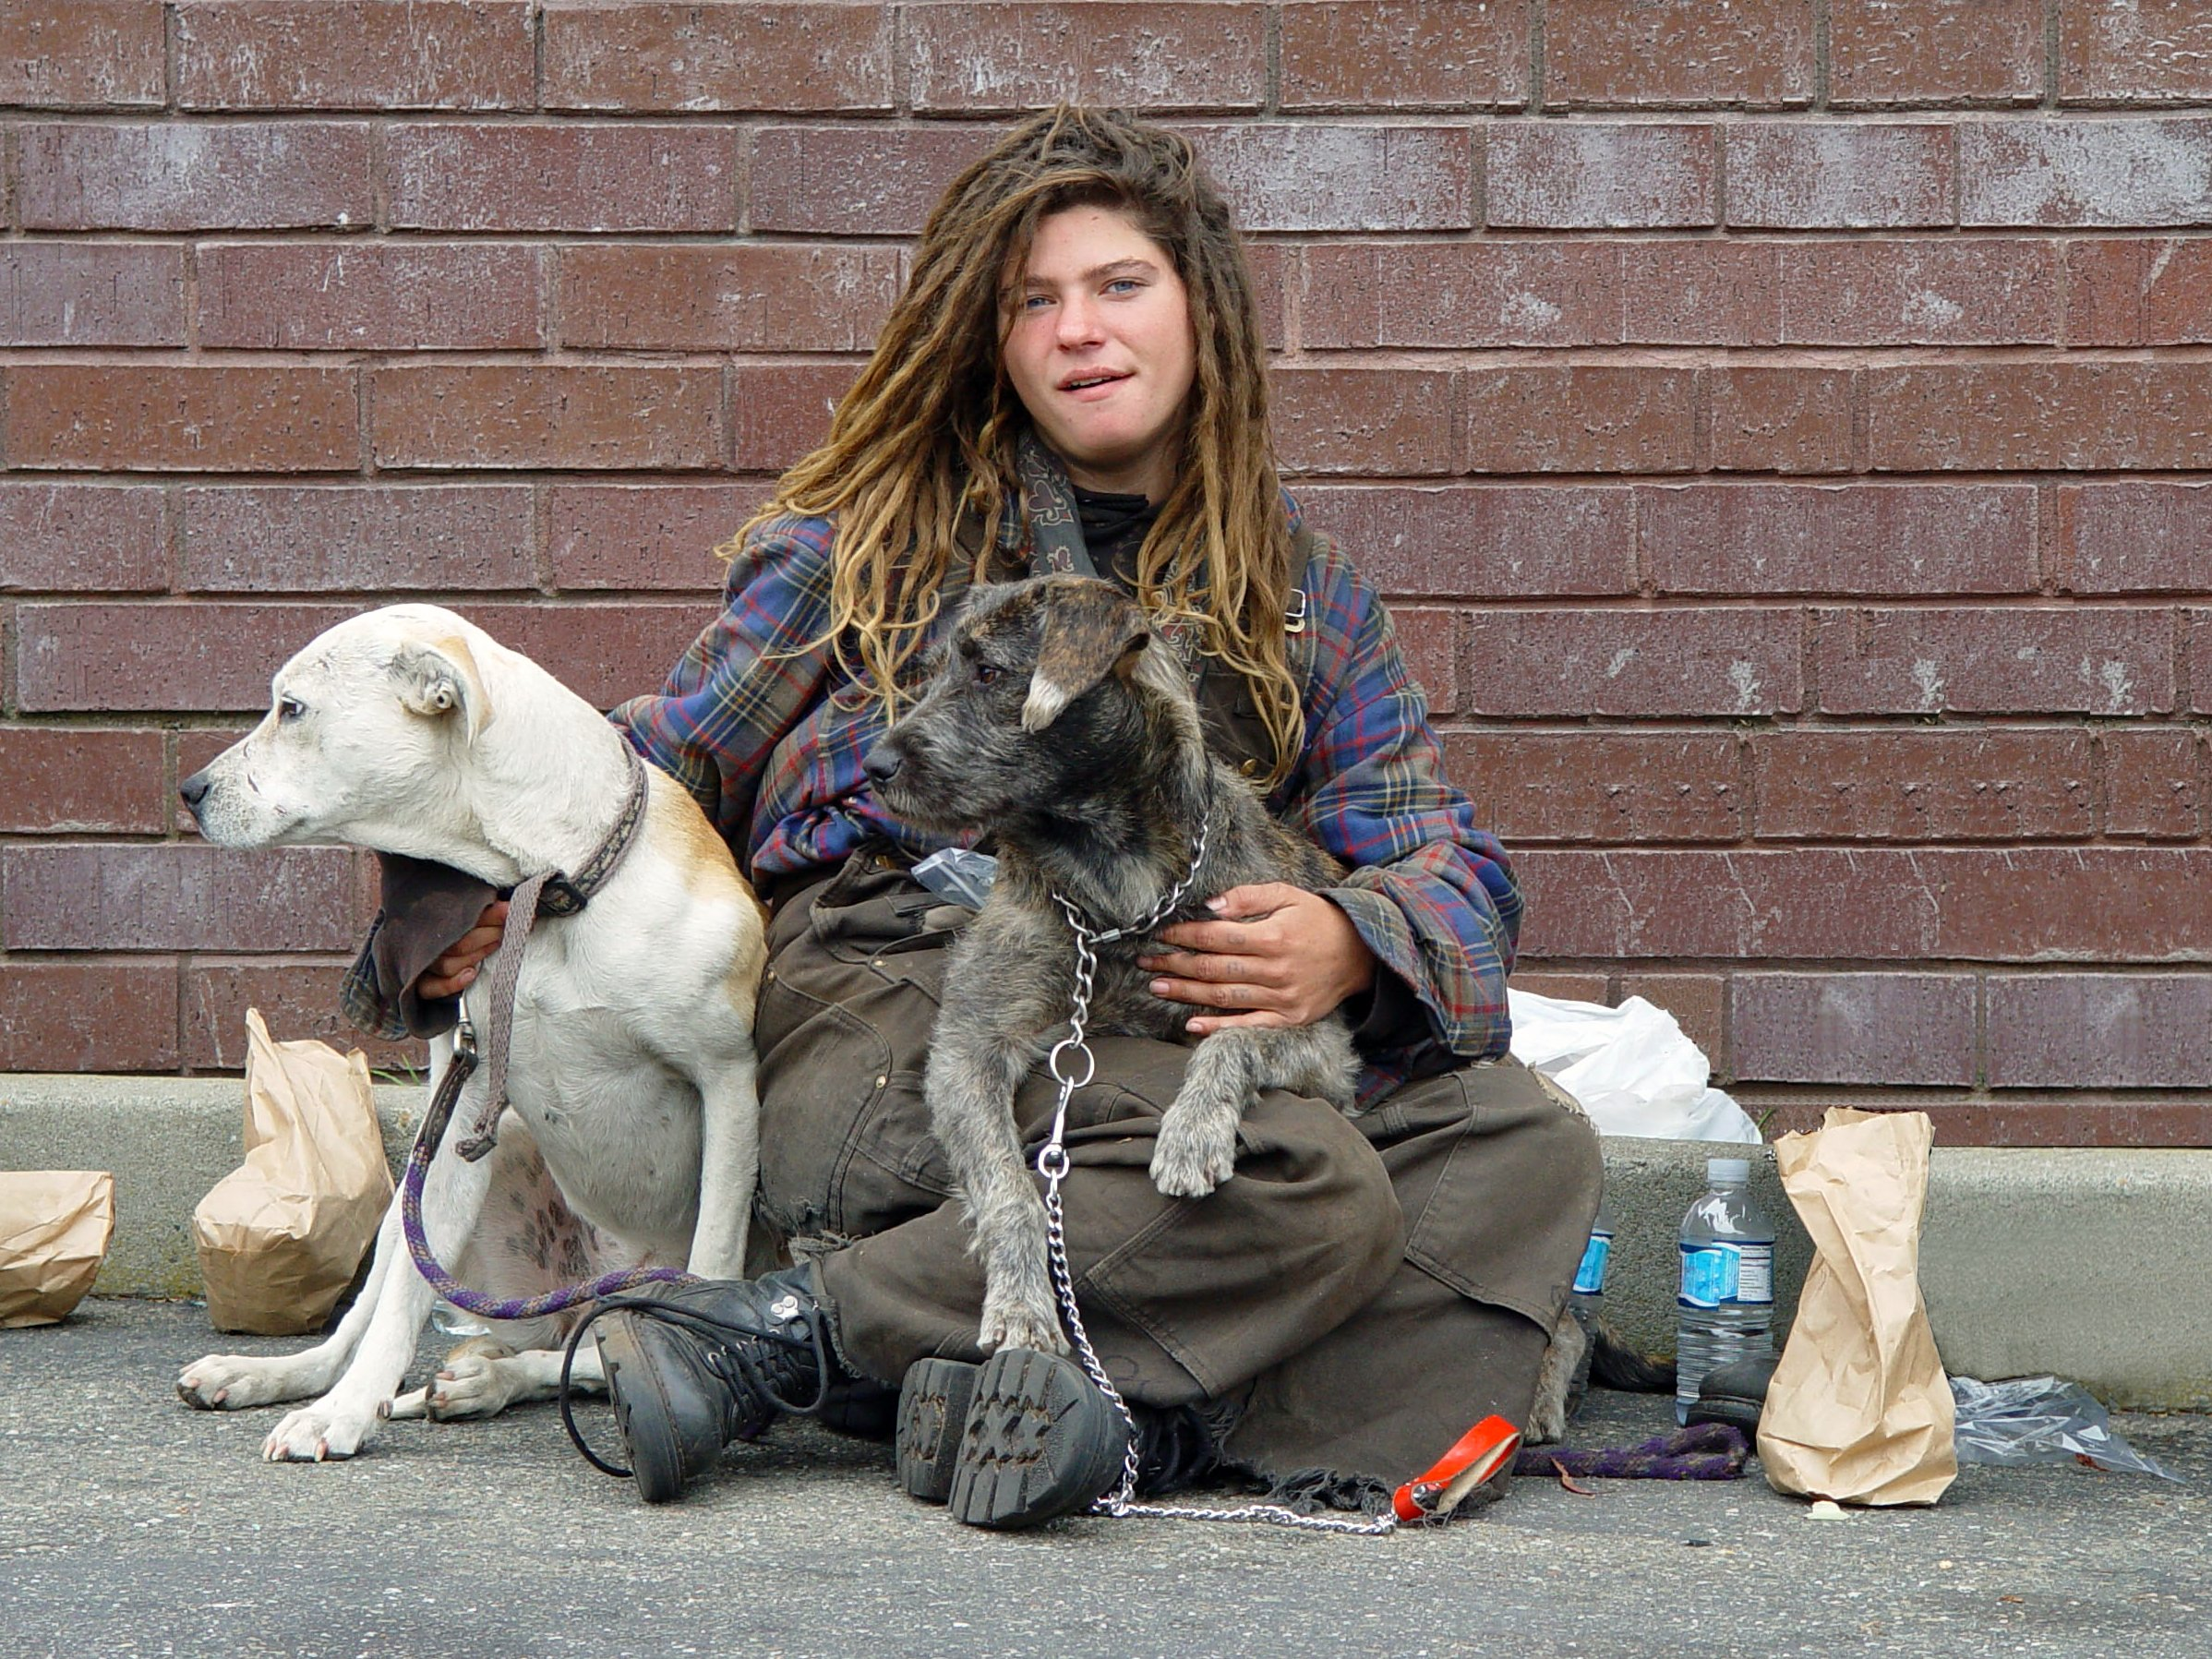 ANIMAL WELFARE BEST OF TIMES WORST OF TIMES